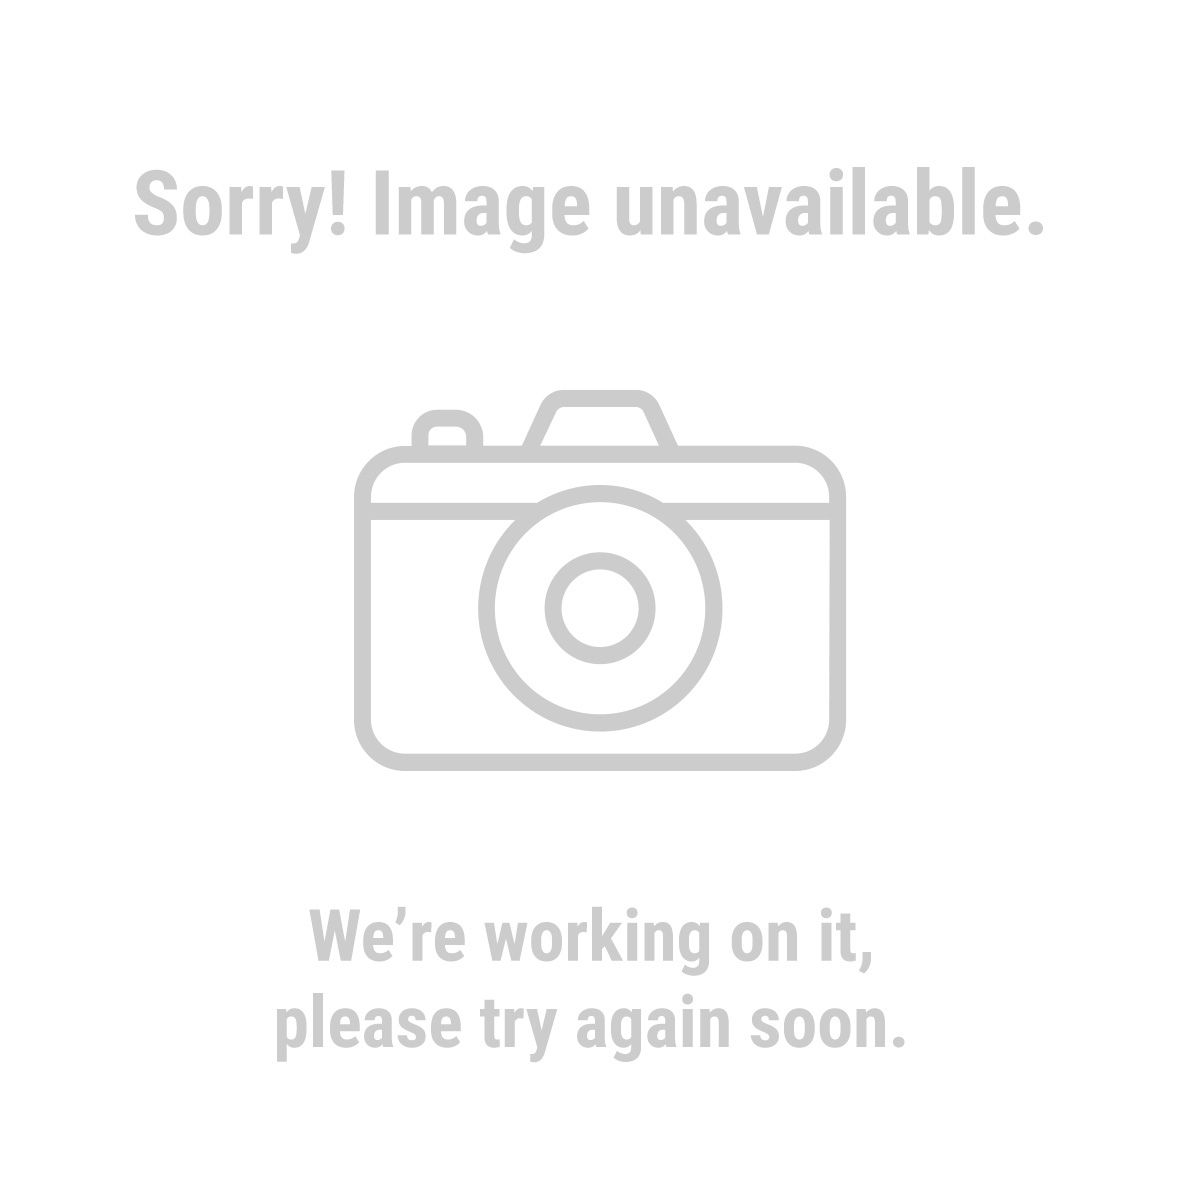 Predator Generators 69672 6500 Watts Peak/5500 Running Watts, 13 HP  (420cc) Gas Generator